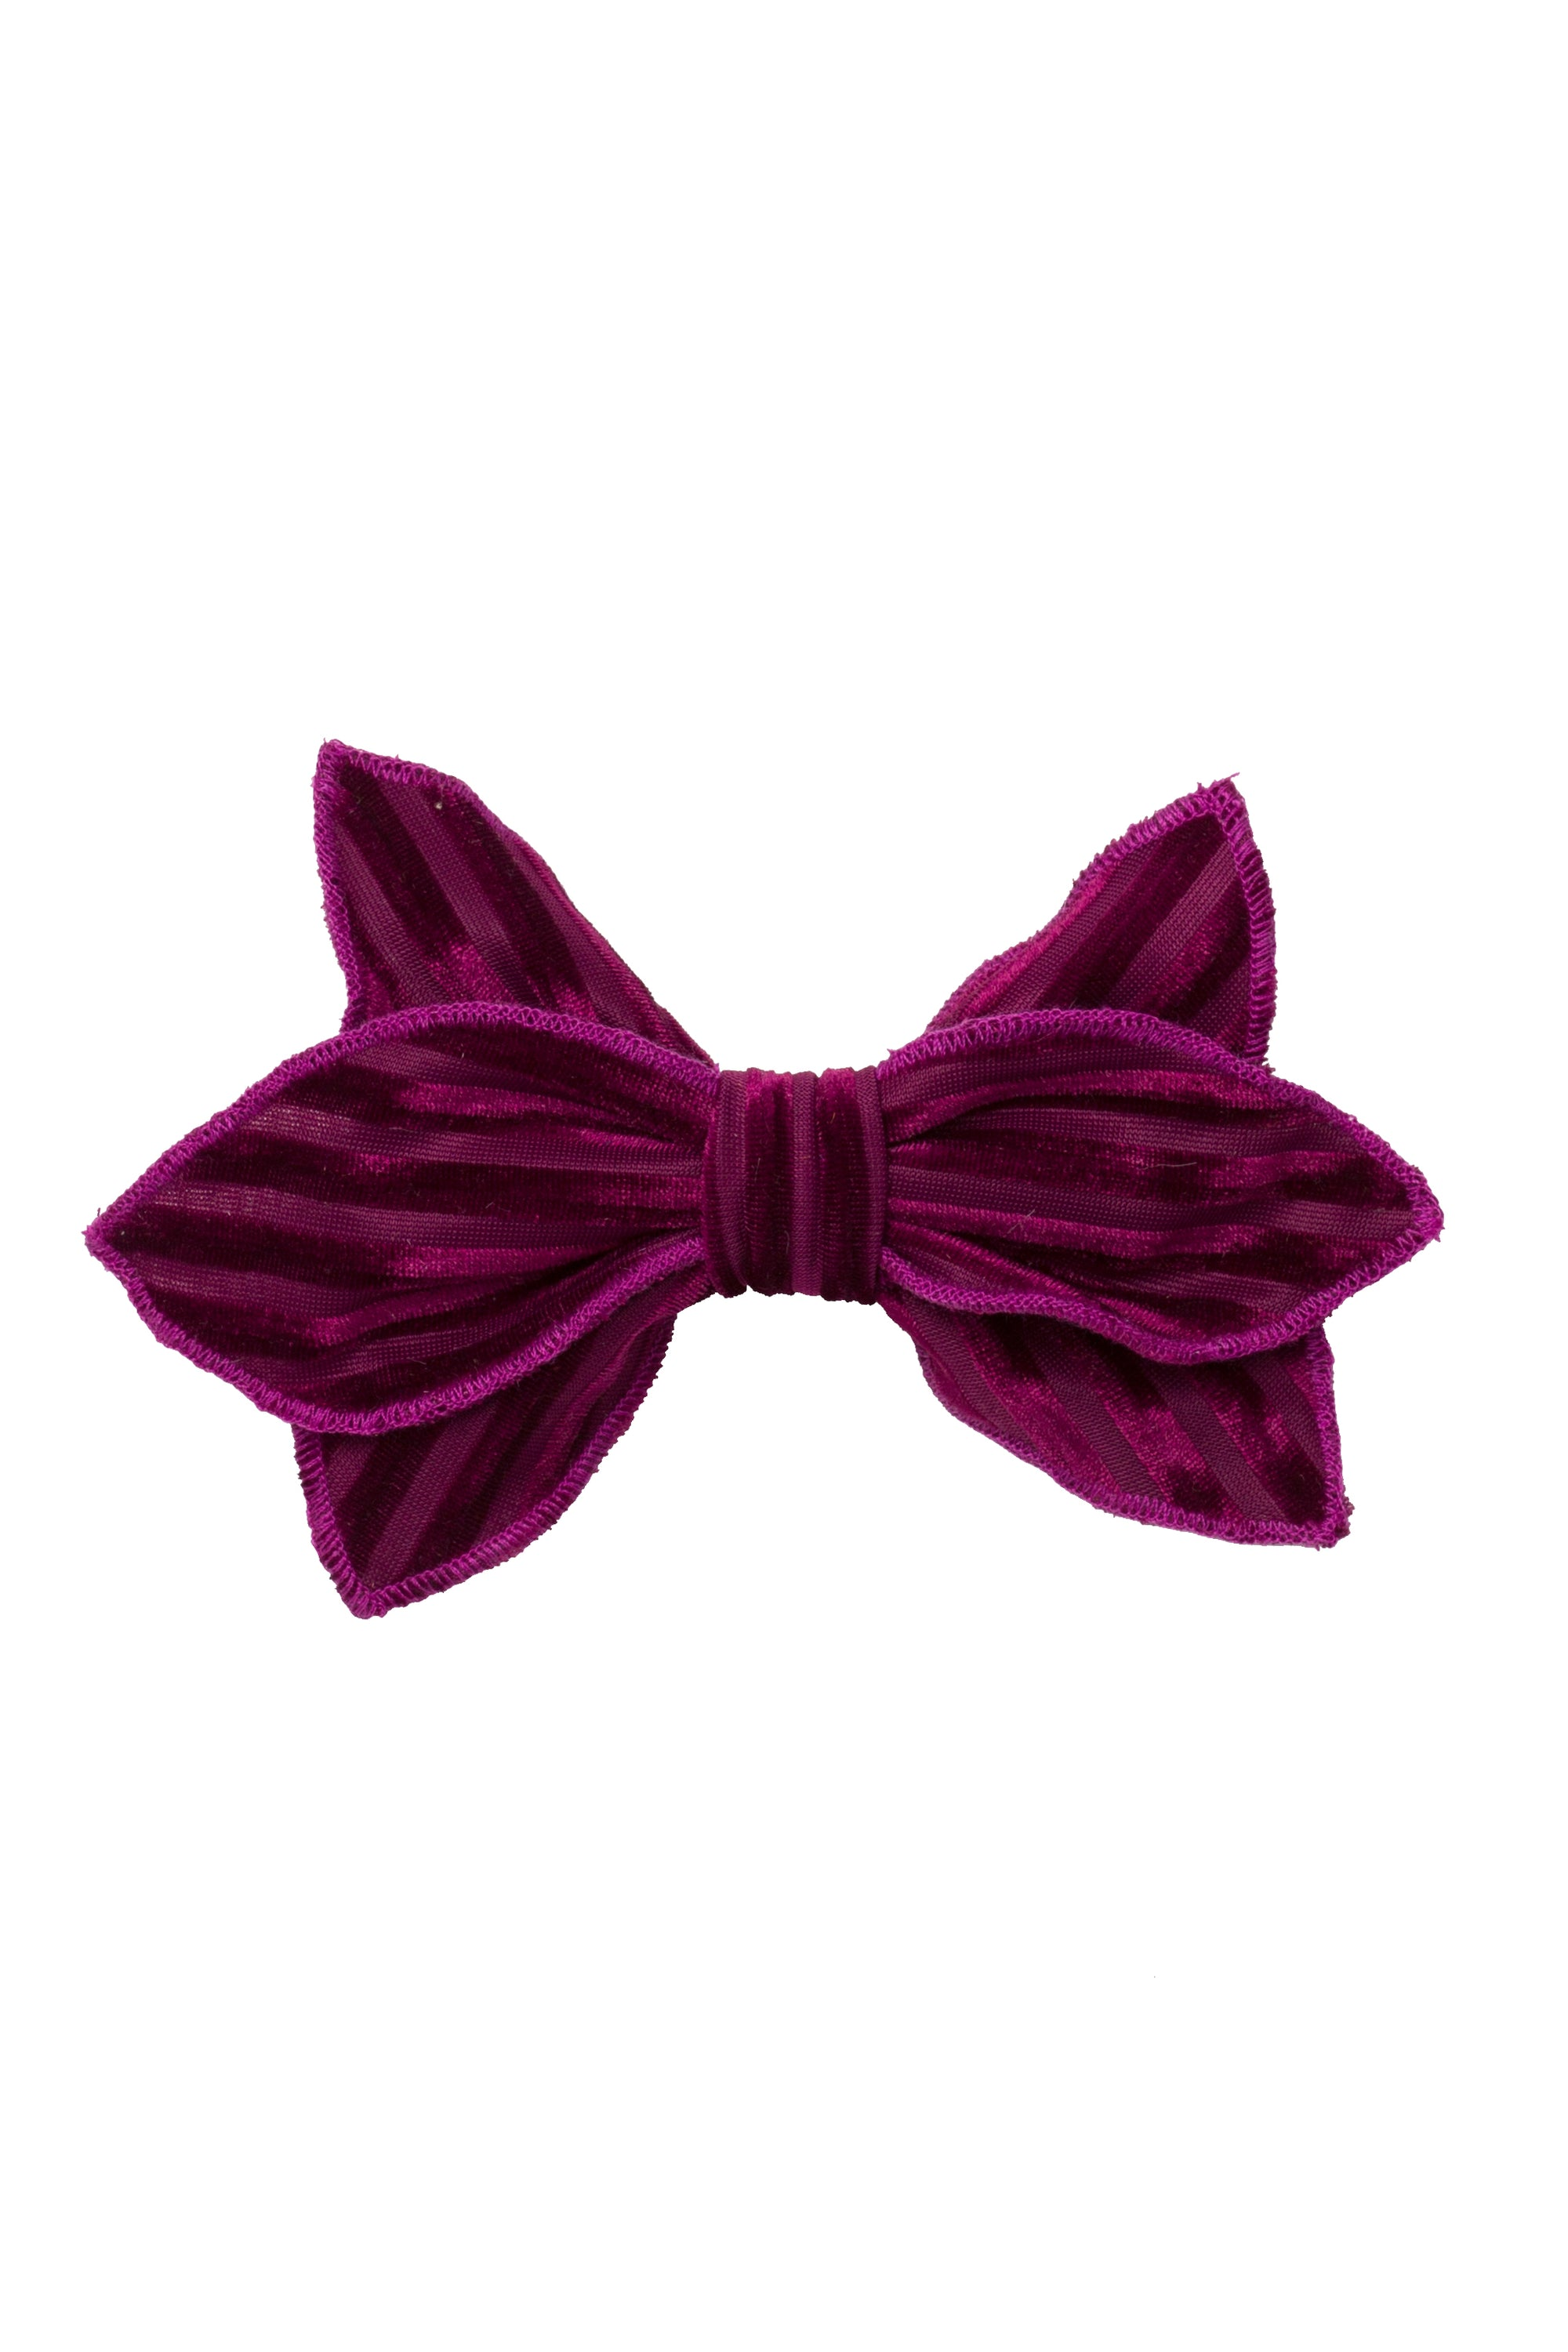 Growing Orchid Clip - Eggplant Velvet Stripe - PROJECT 6, modest fashion